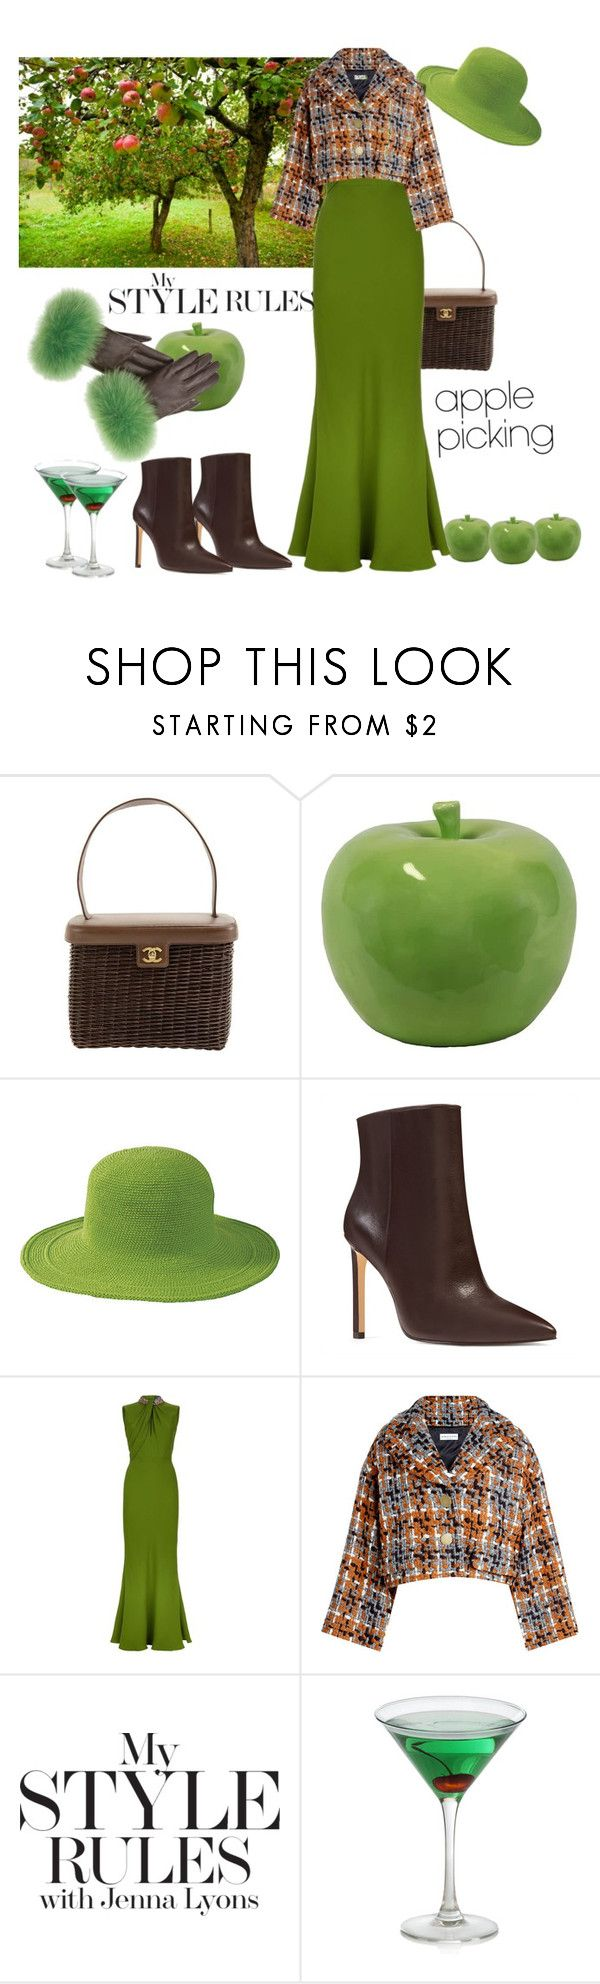 """""""Let's pick some apples"""" by ellenfischerbeauty ❤ liked on Polyvore featuring Chanel, Urban Trends Collection, San Diego Hat Co., Nine West, Alexander McQueen and Sonia Rykiel"""